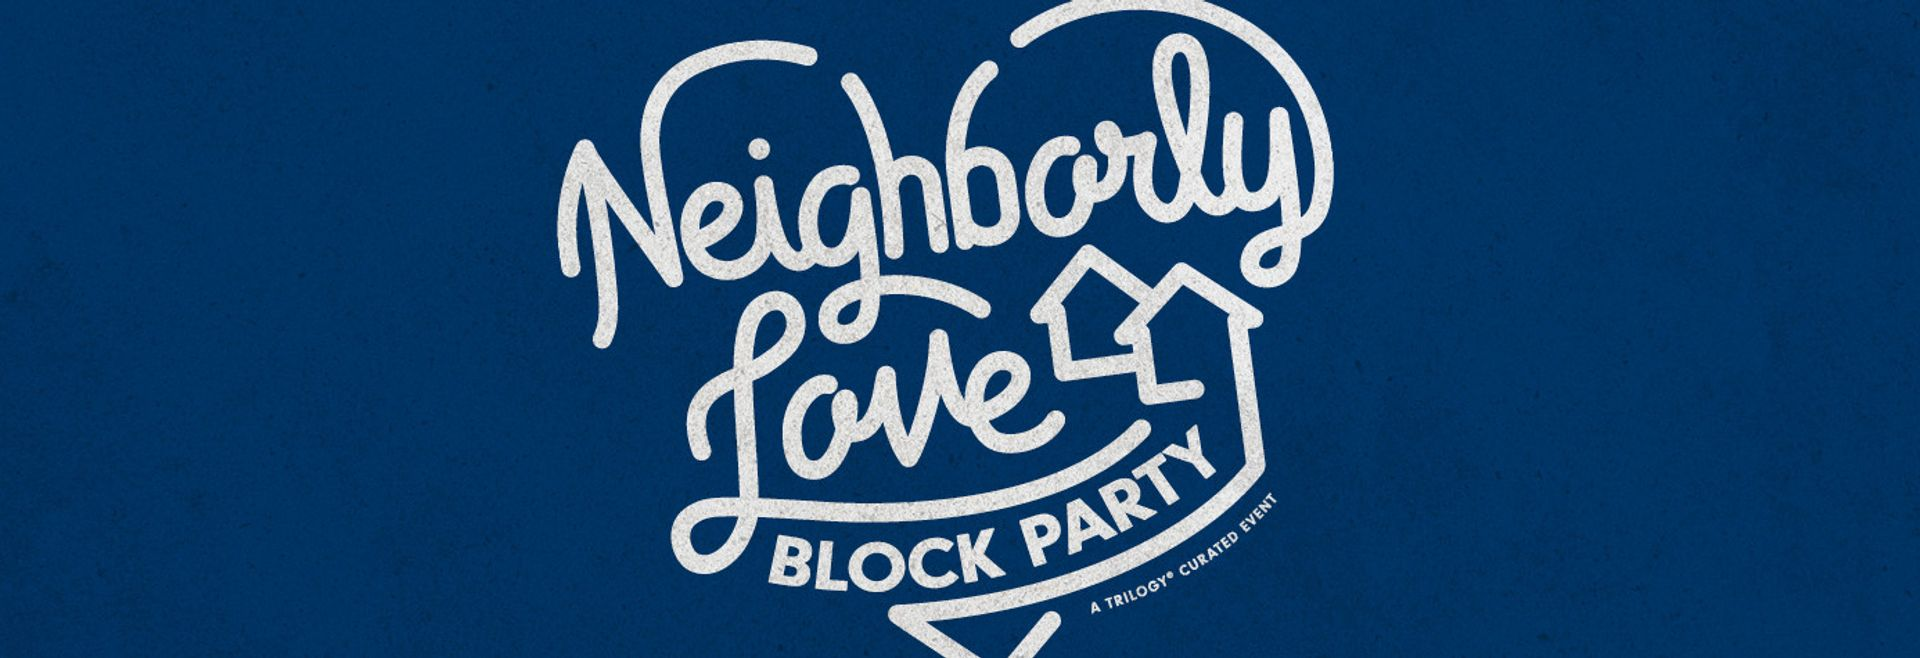 Neighborly Love Block Party